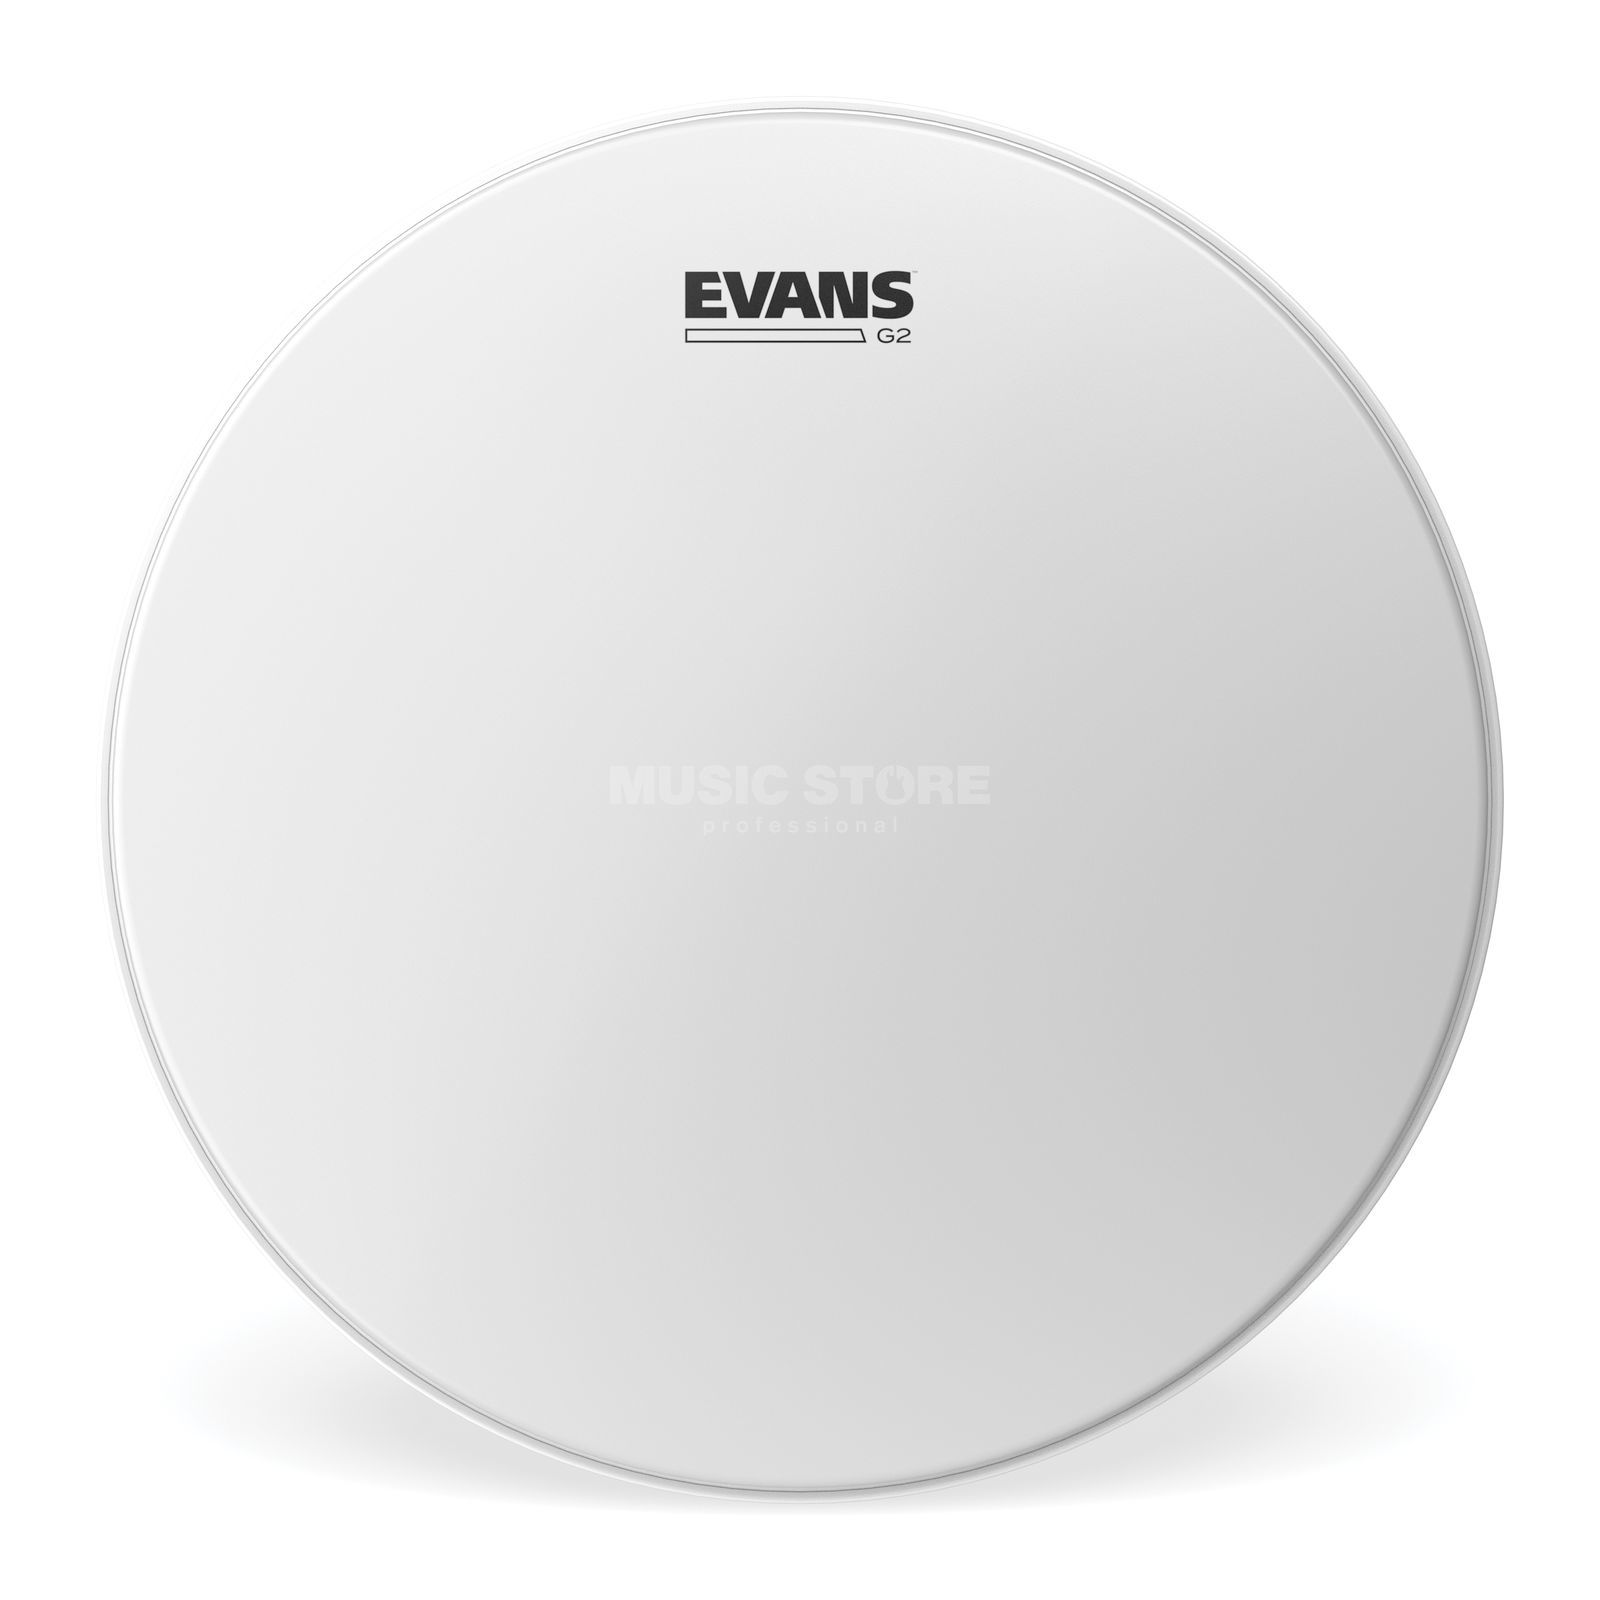 "Evans G2 Coated 16"", B16G2, Tom Batter Product Image"